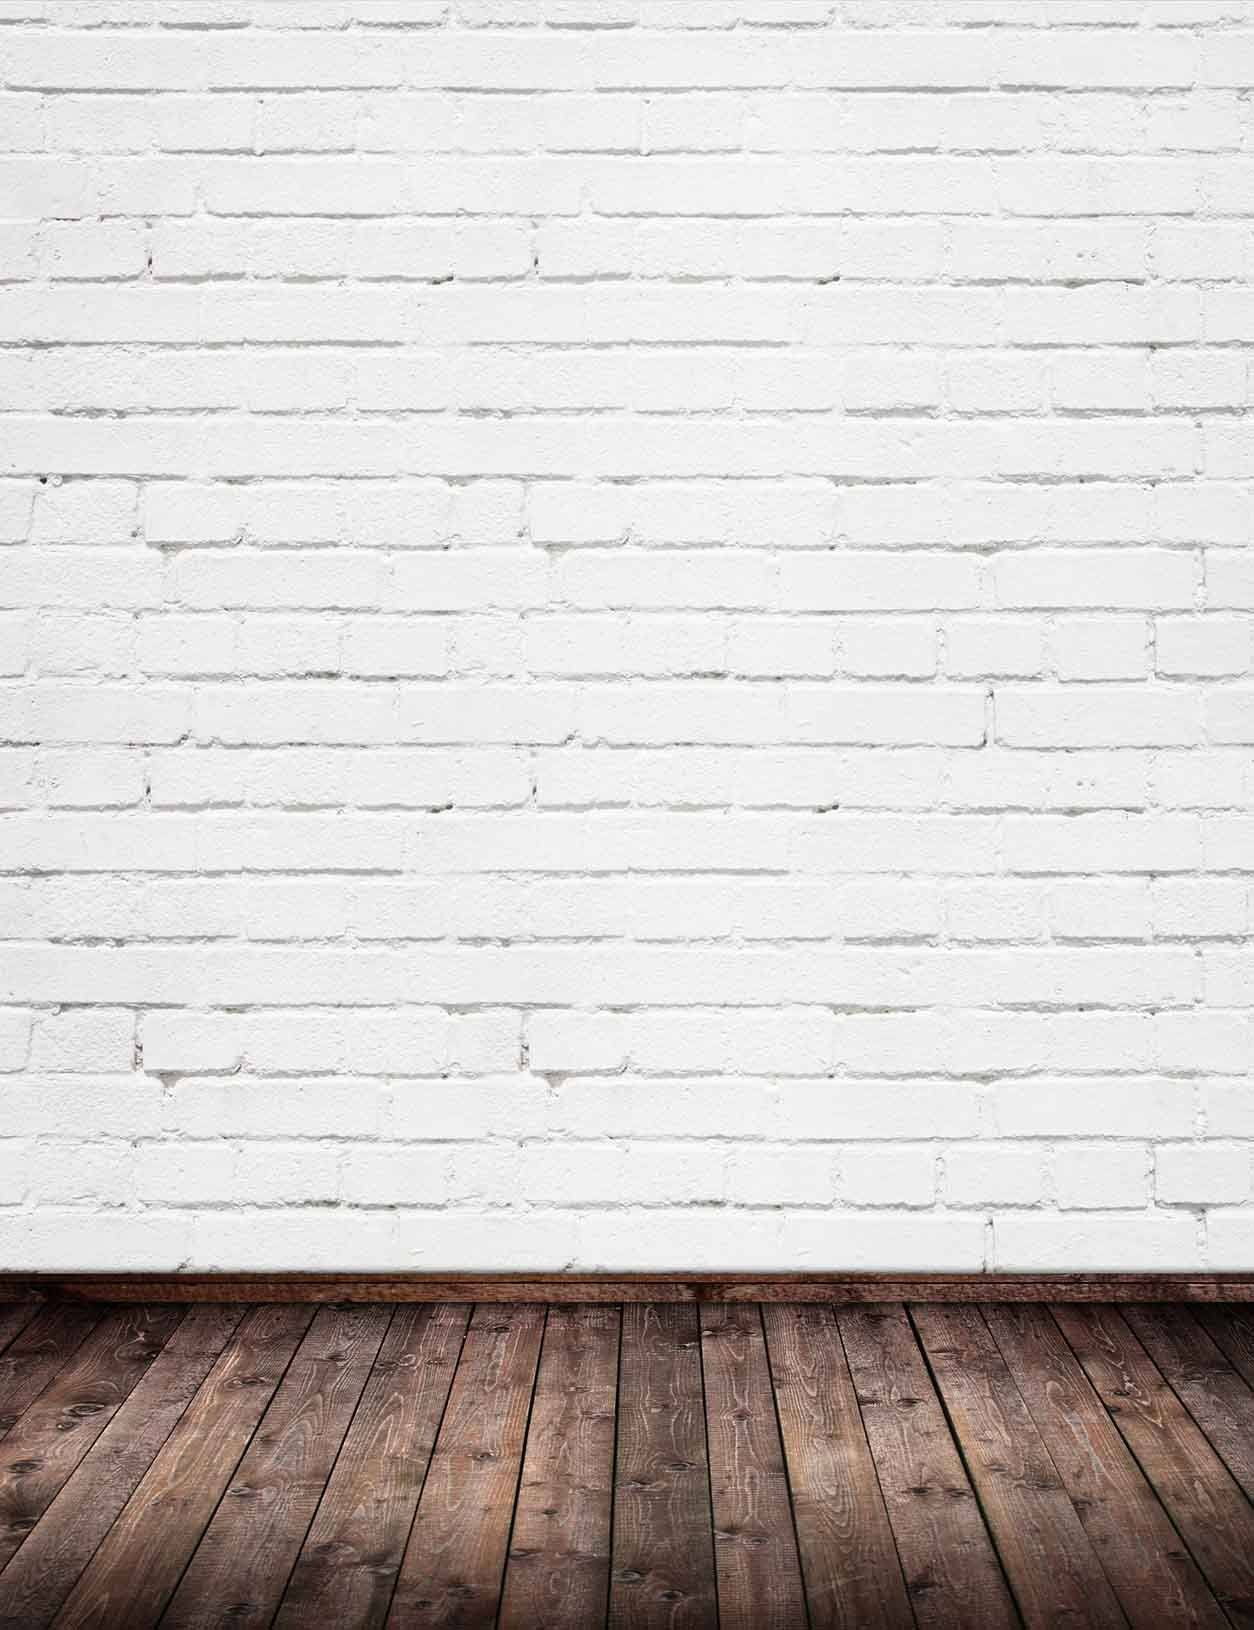 White Brick Wall Texture With Old Brown Wood Floor